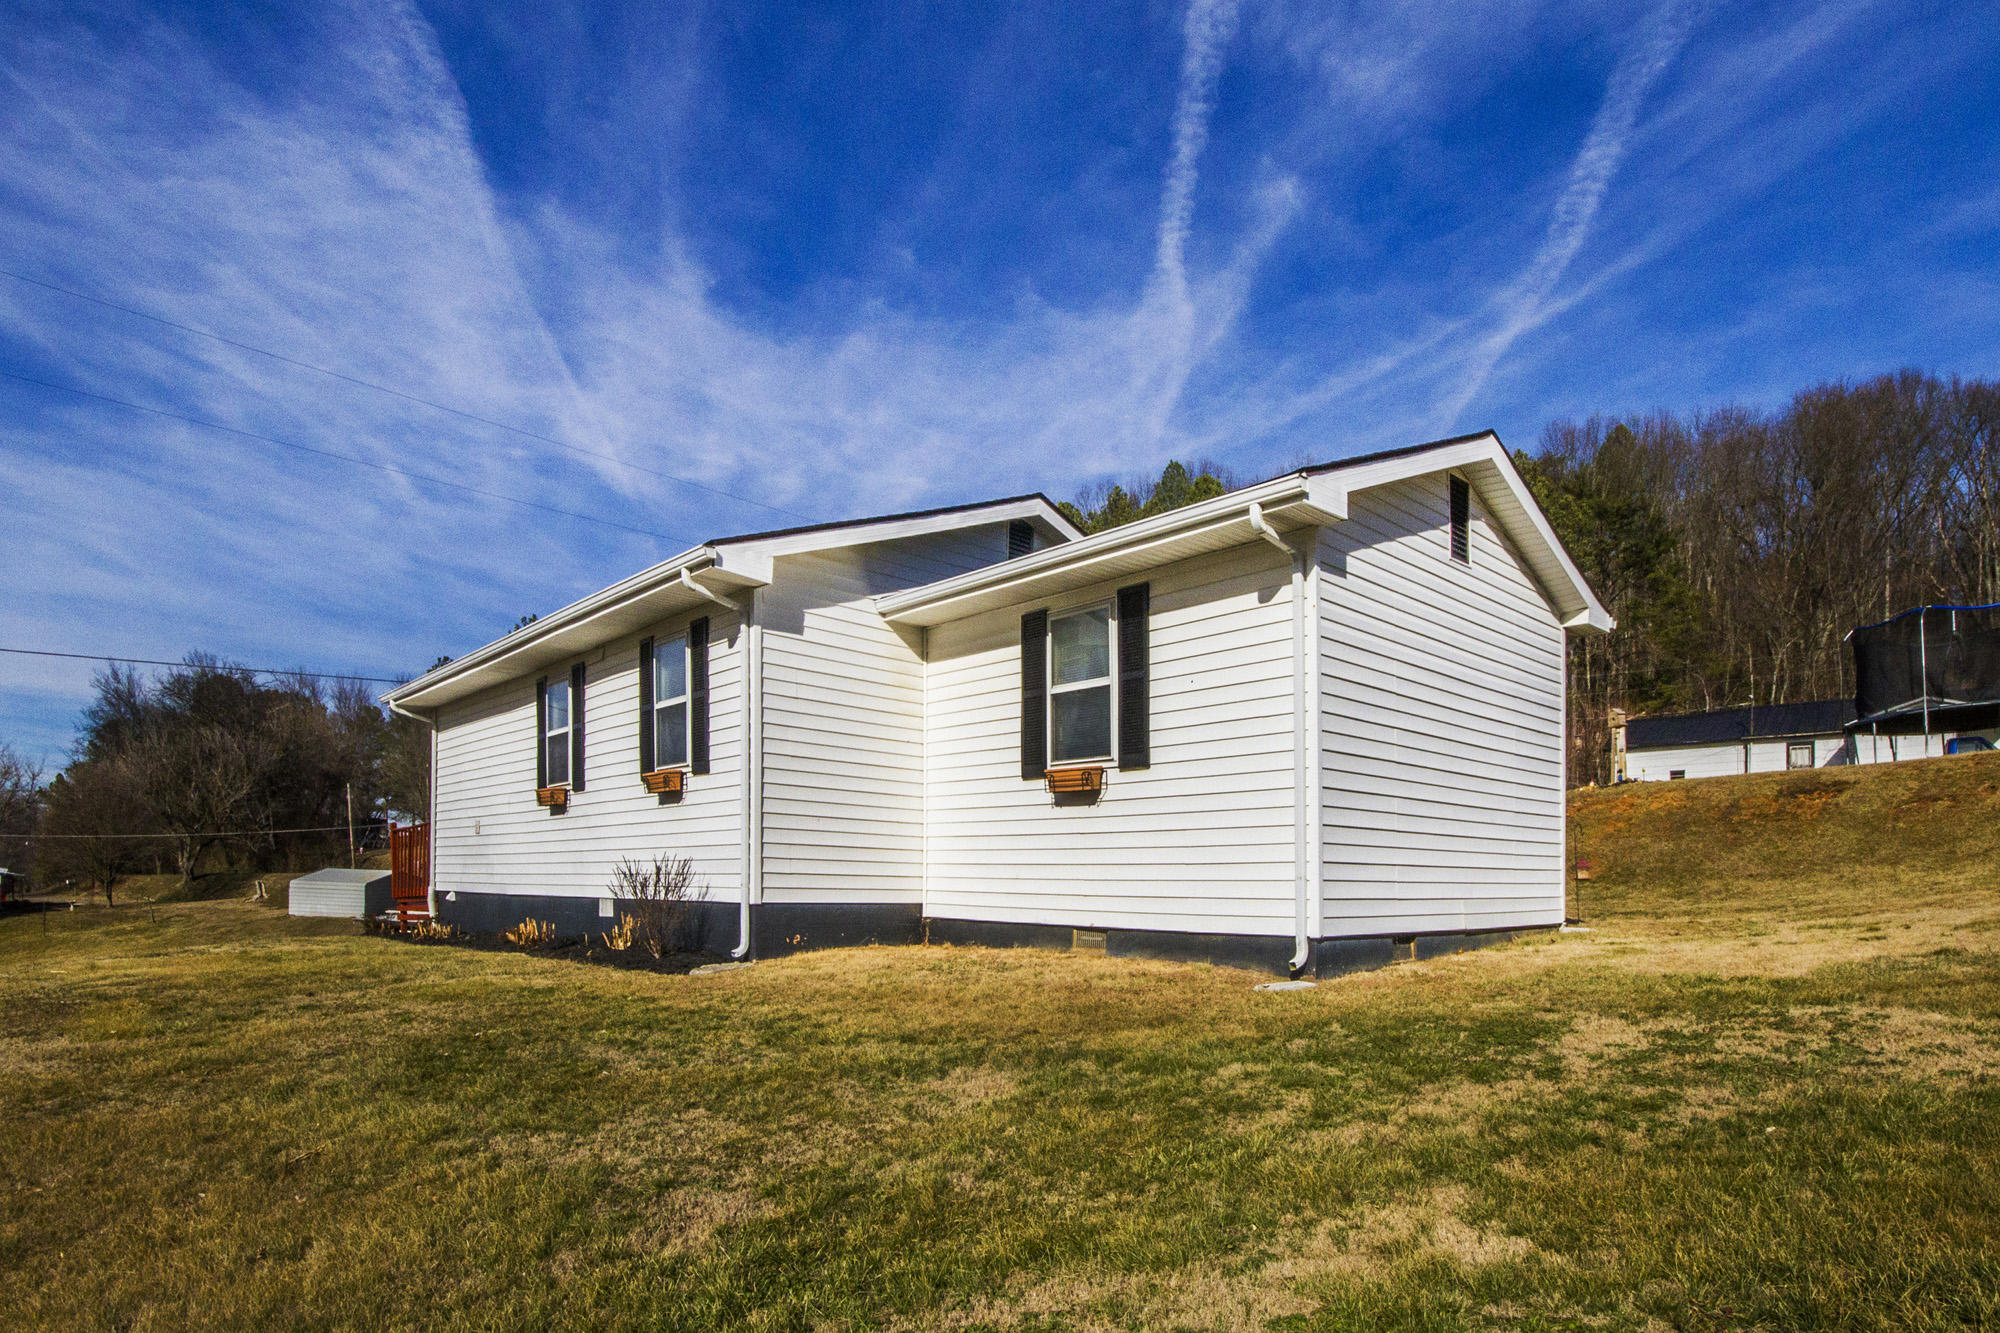 860 Highway 92, Jefferson City, Tennessee 37760, 3 Bedrooms Bedrooms, ,2 BathroomsBathrooms,Single Family,For Sale,Highway 92,1030261